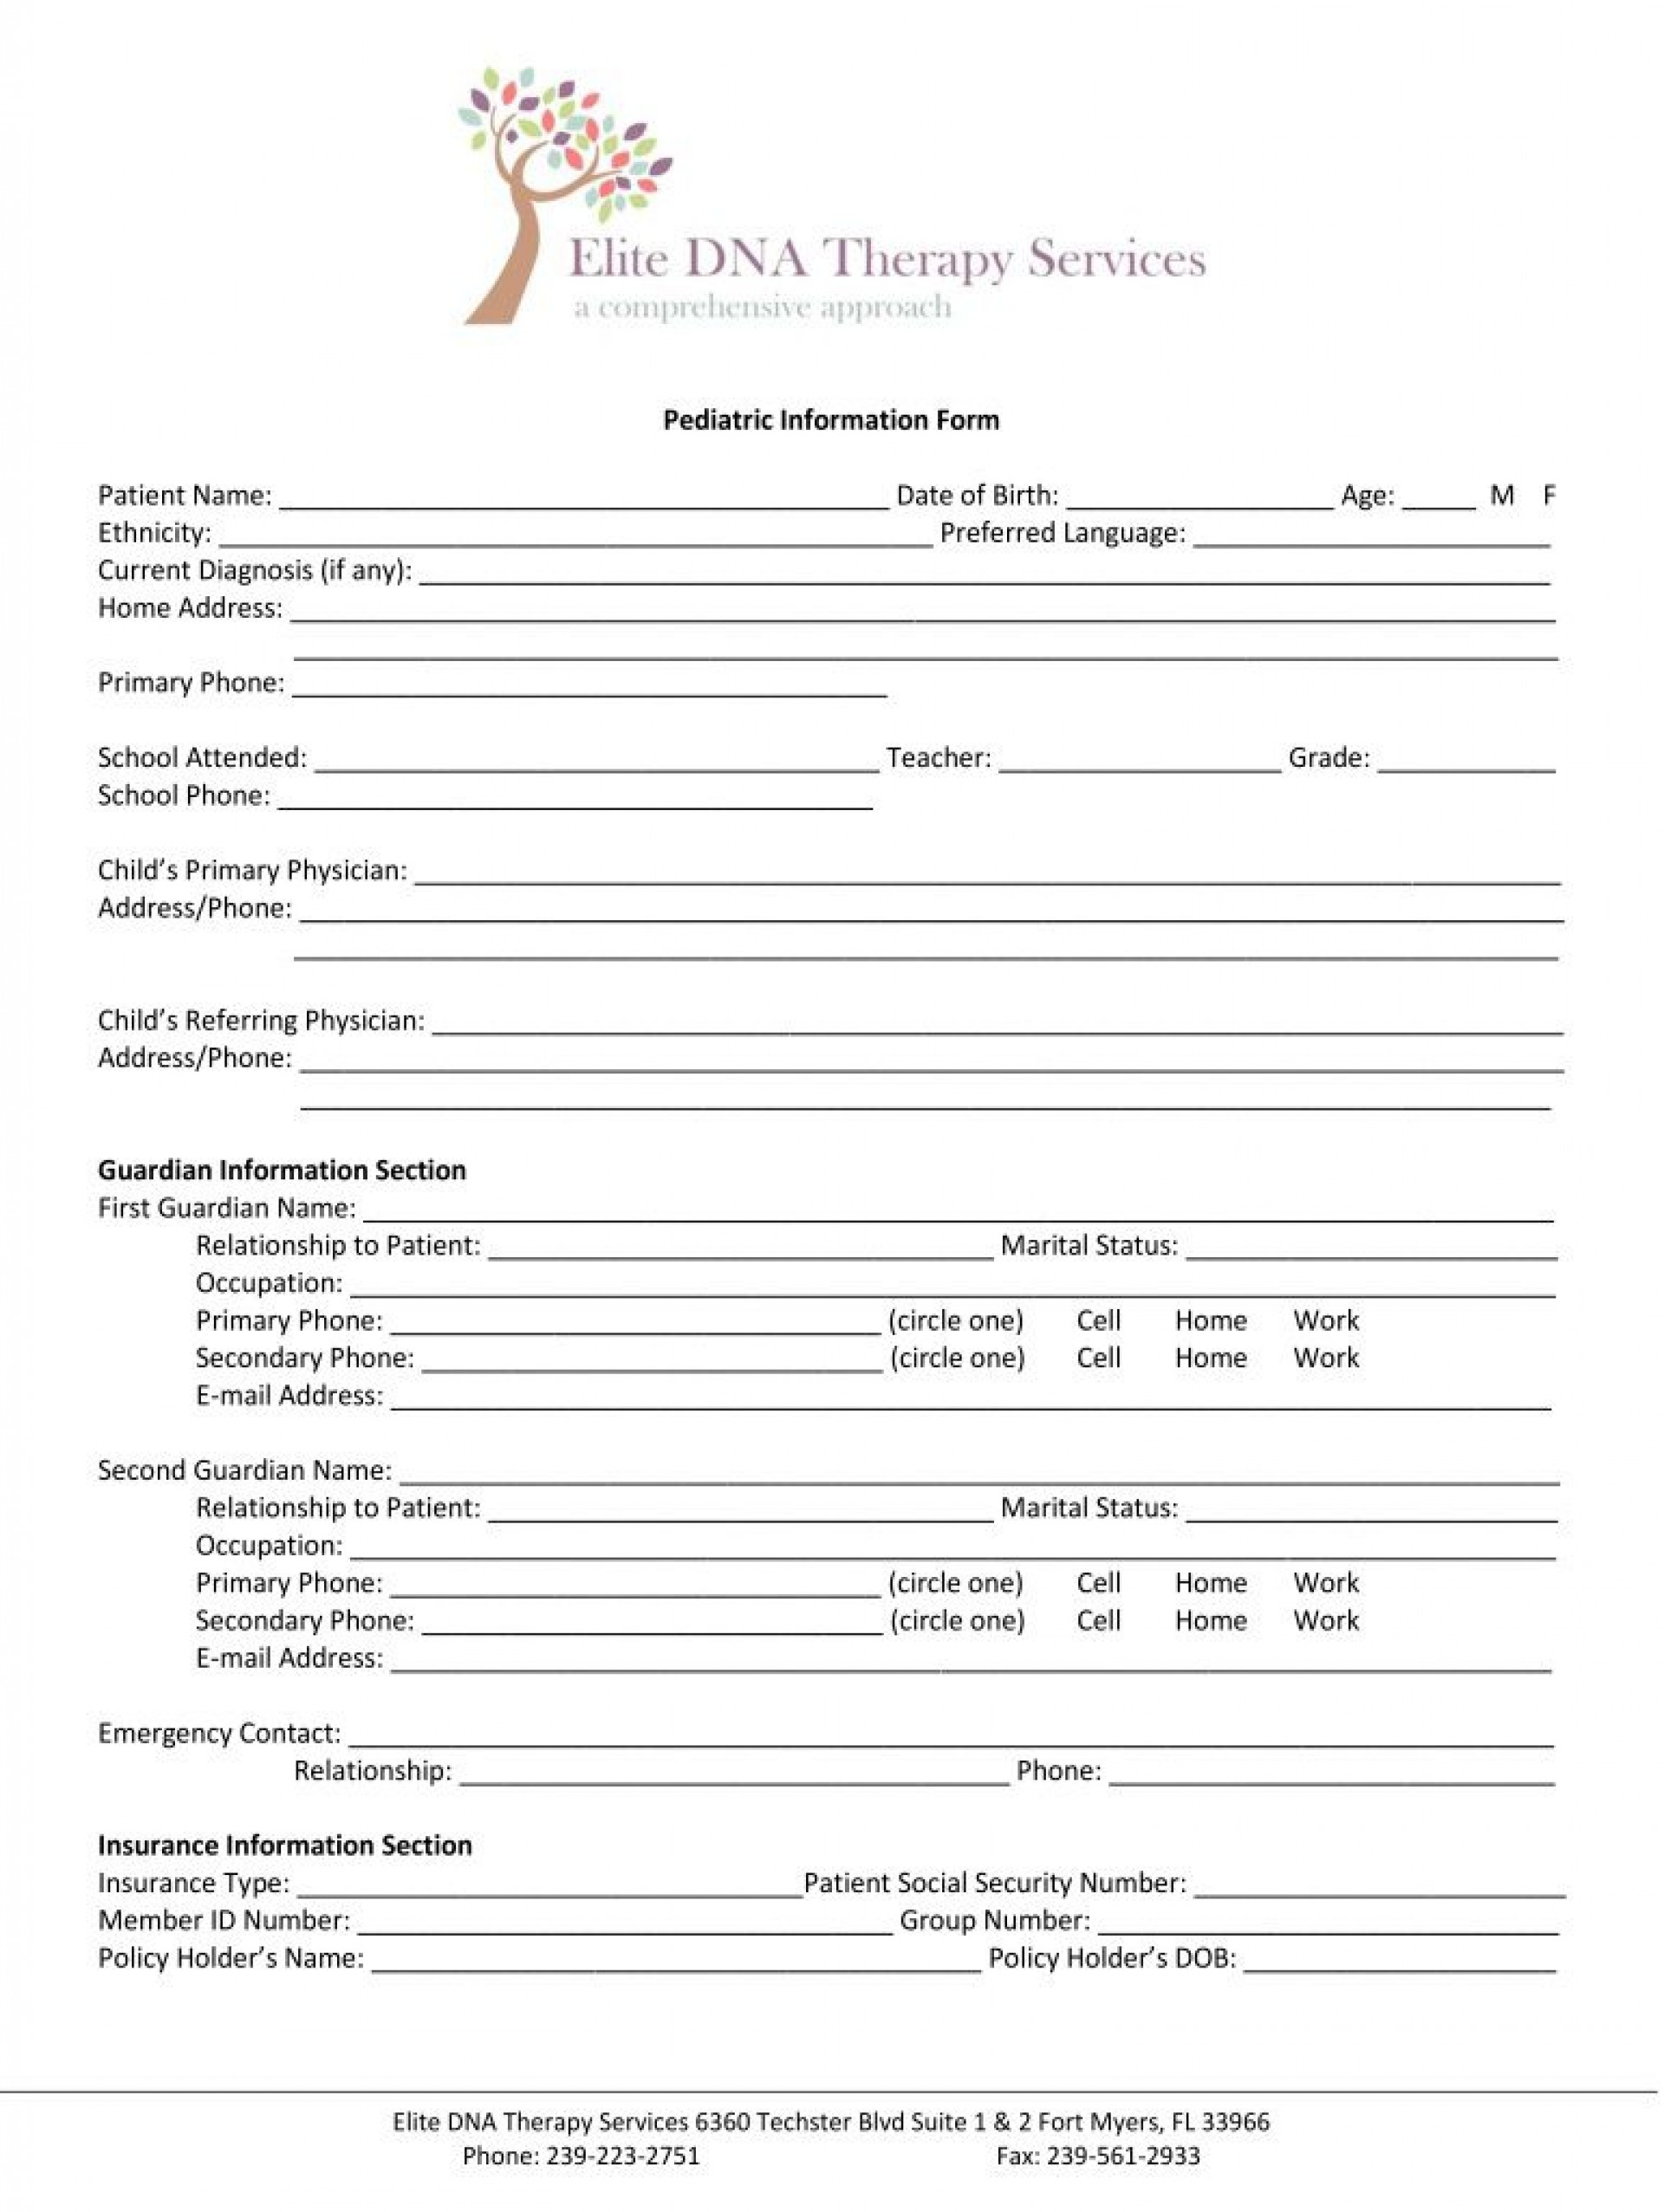 005 Unique Counseling Intake Form Template Design  Templates Therapy Massage Free1920